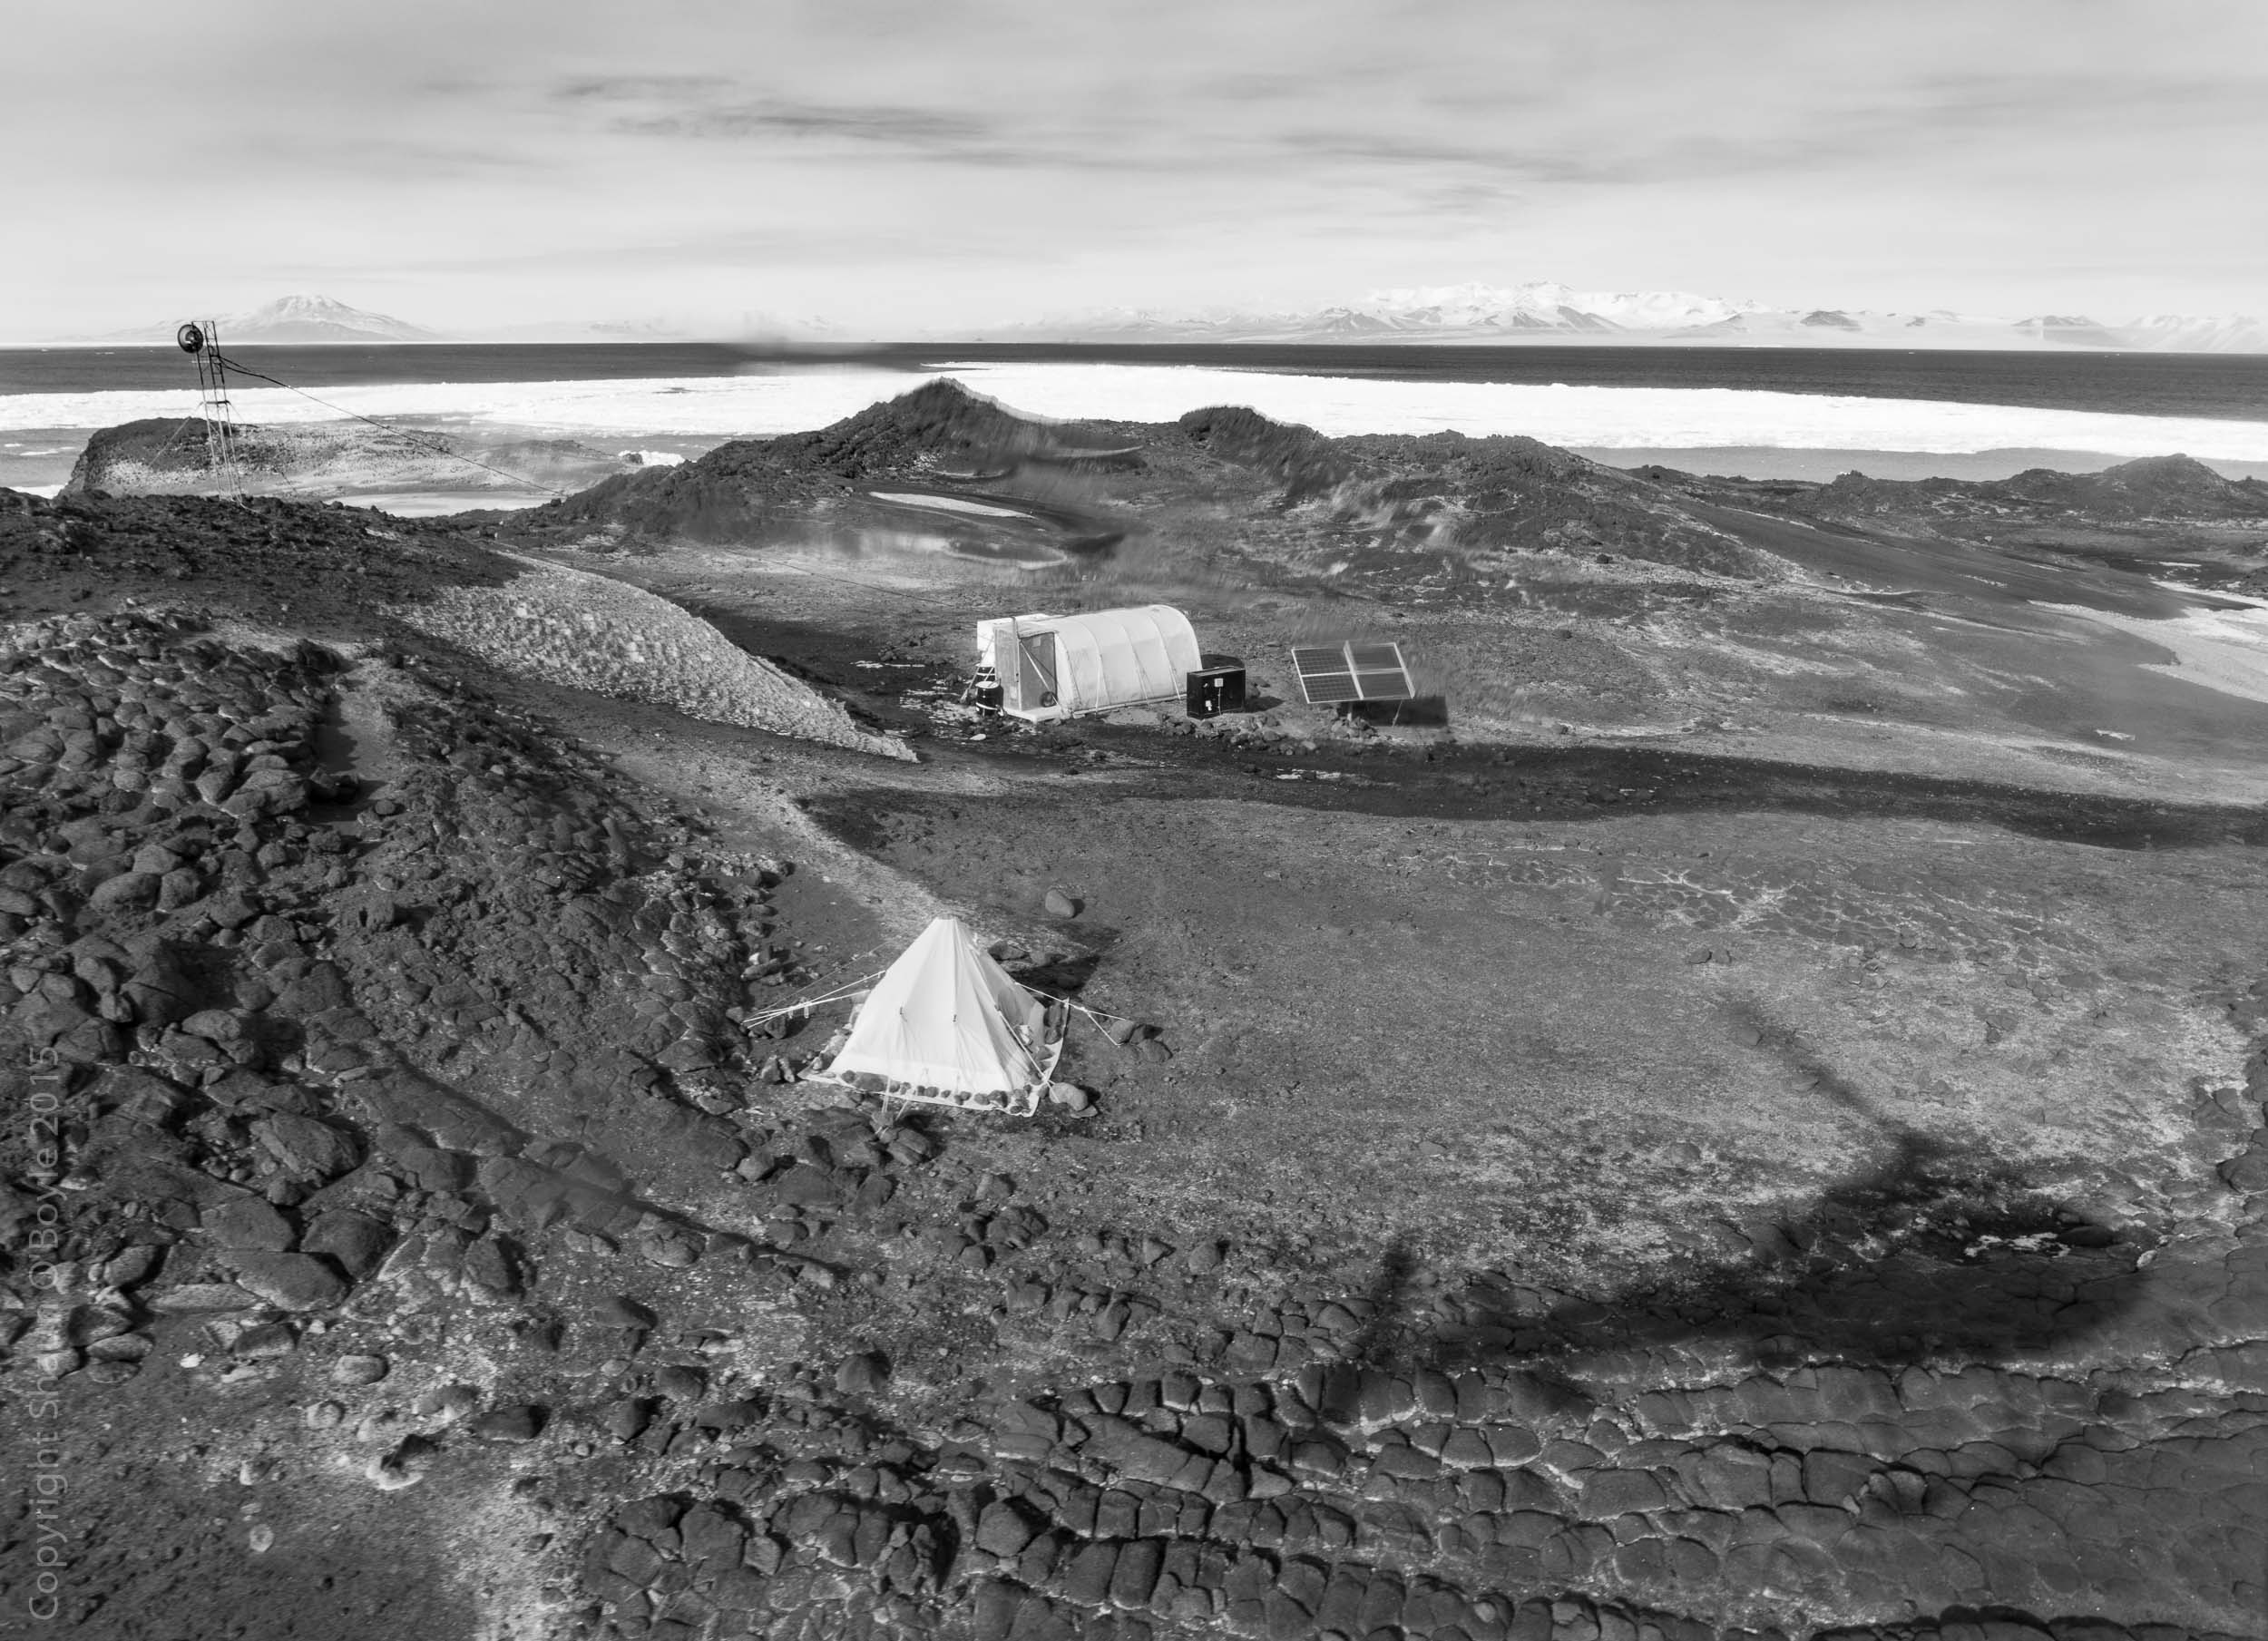 Arriving at Cape Royds Camp. A small setup for two field biologists to study the nearby Adelie Penguin colony. The tent is a Polar Haven tent used as a kitchen and social area.